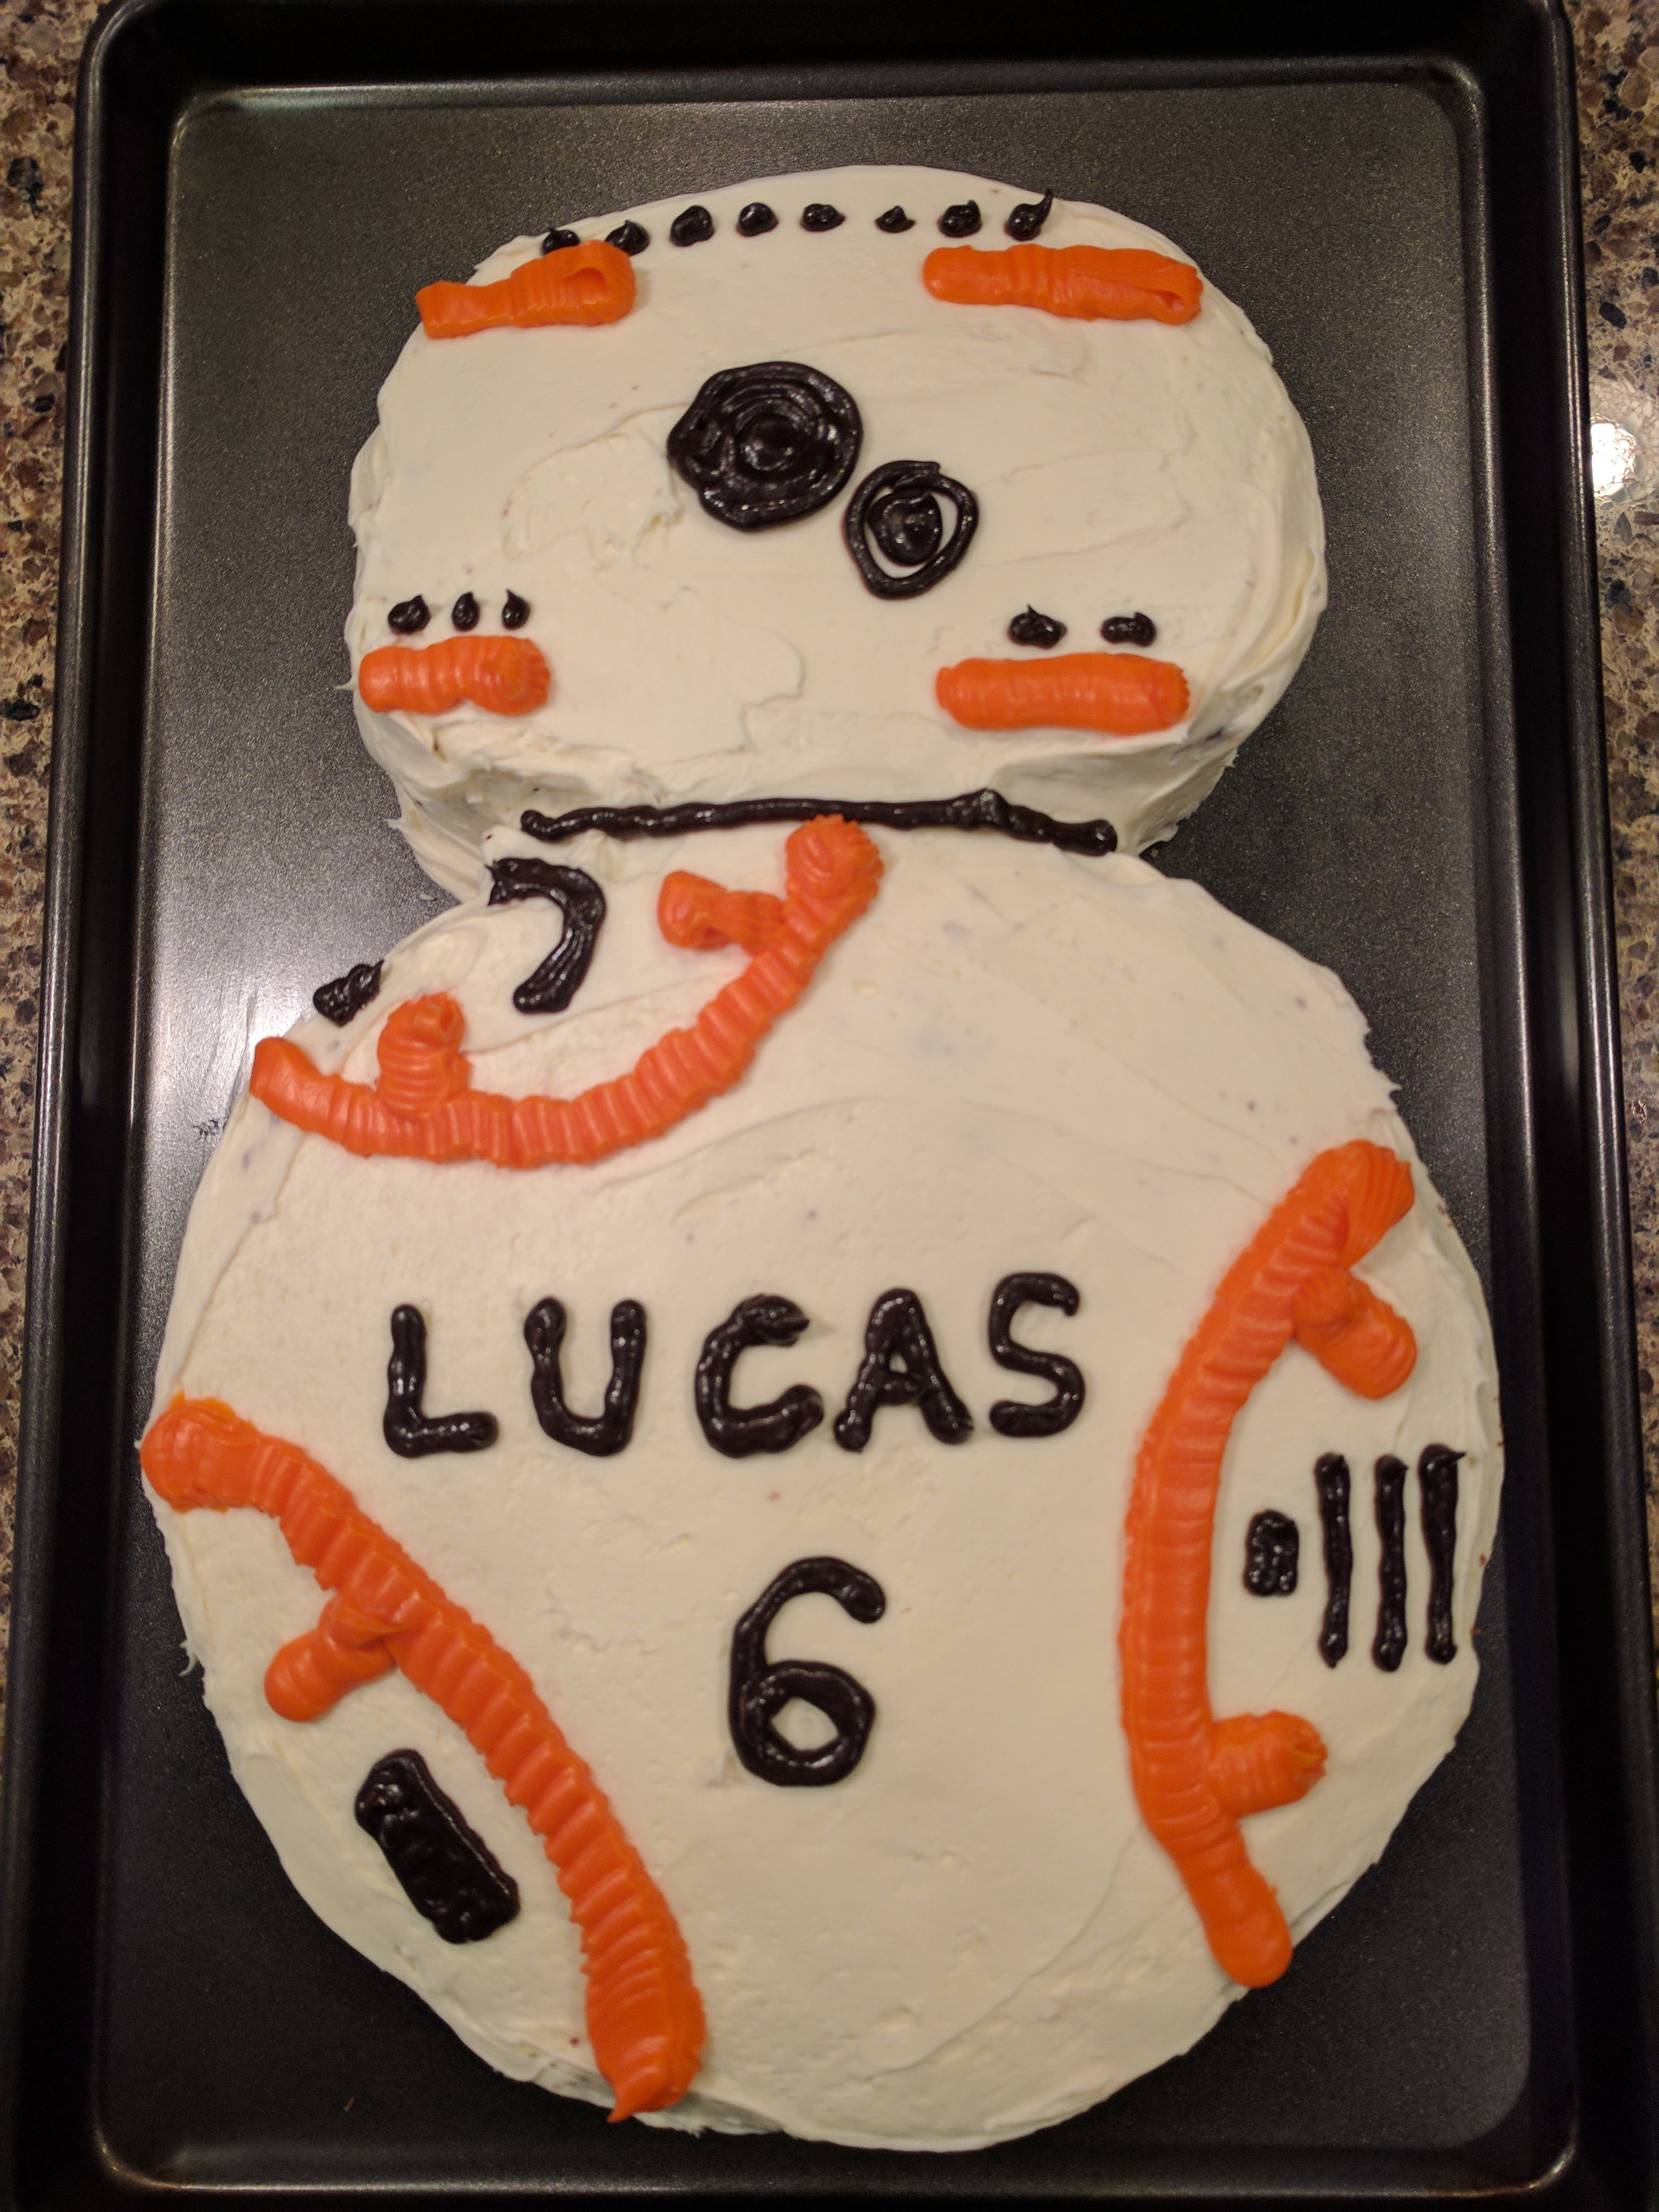 Bb8 cake two layers the bottom is just a standard round